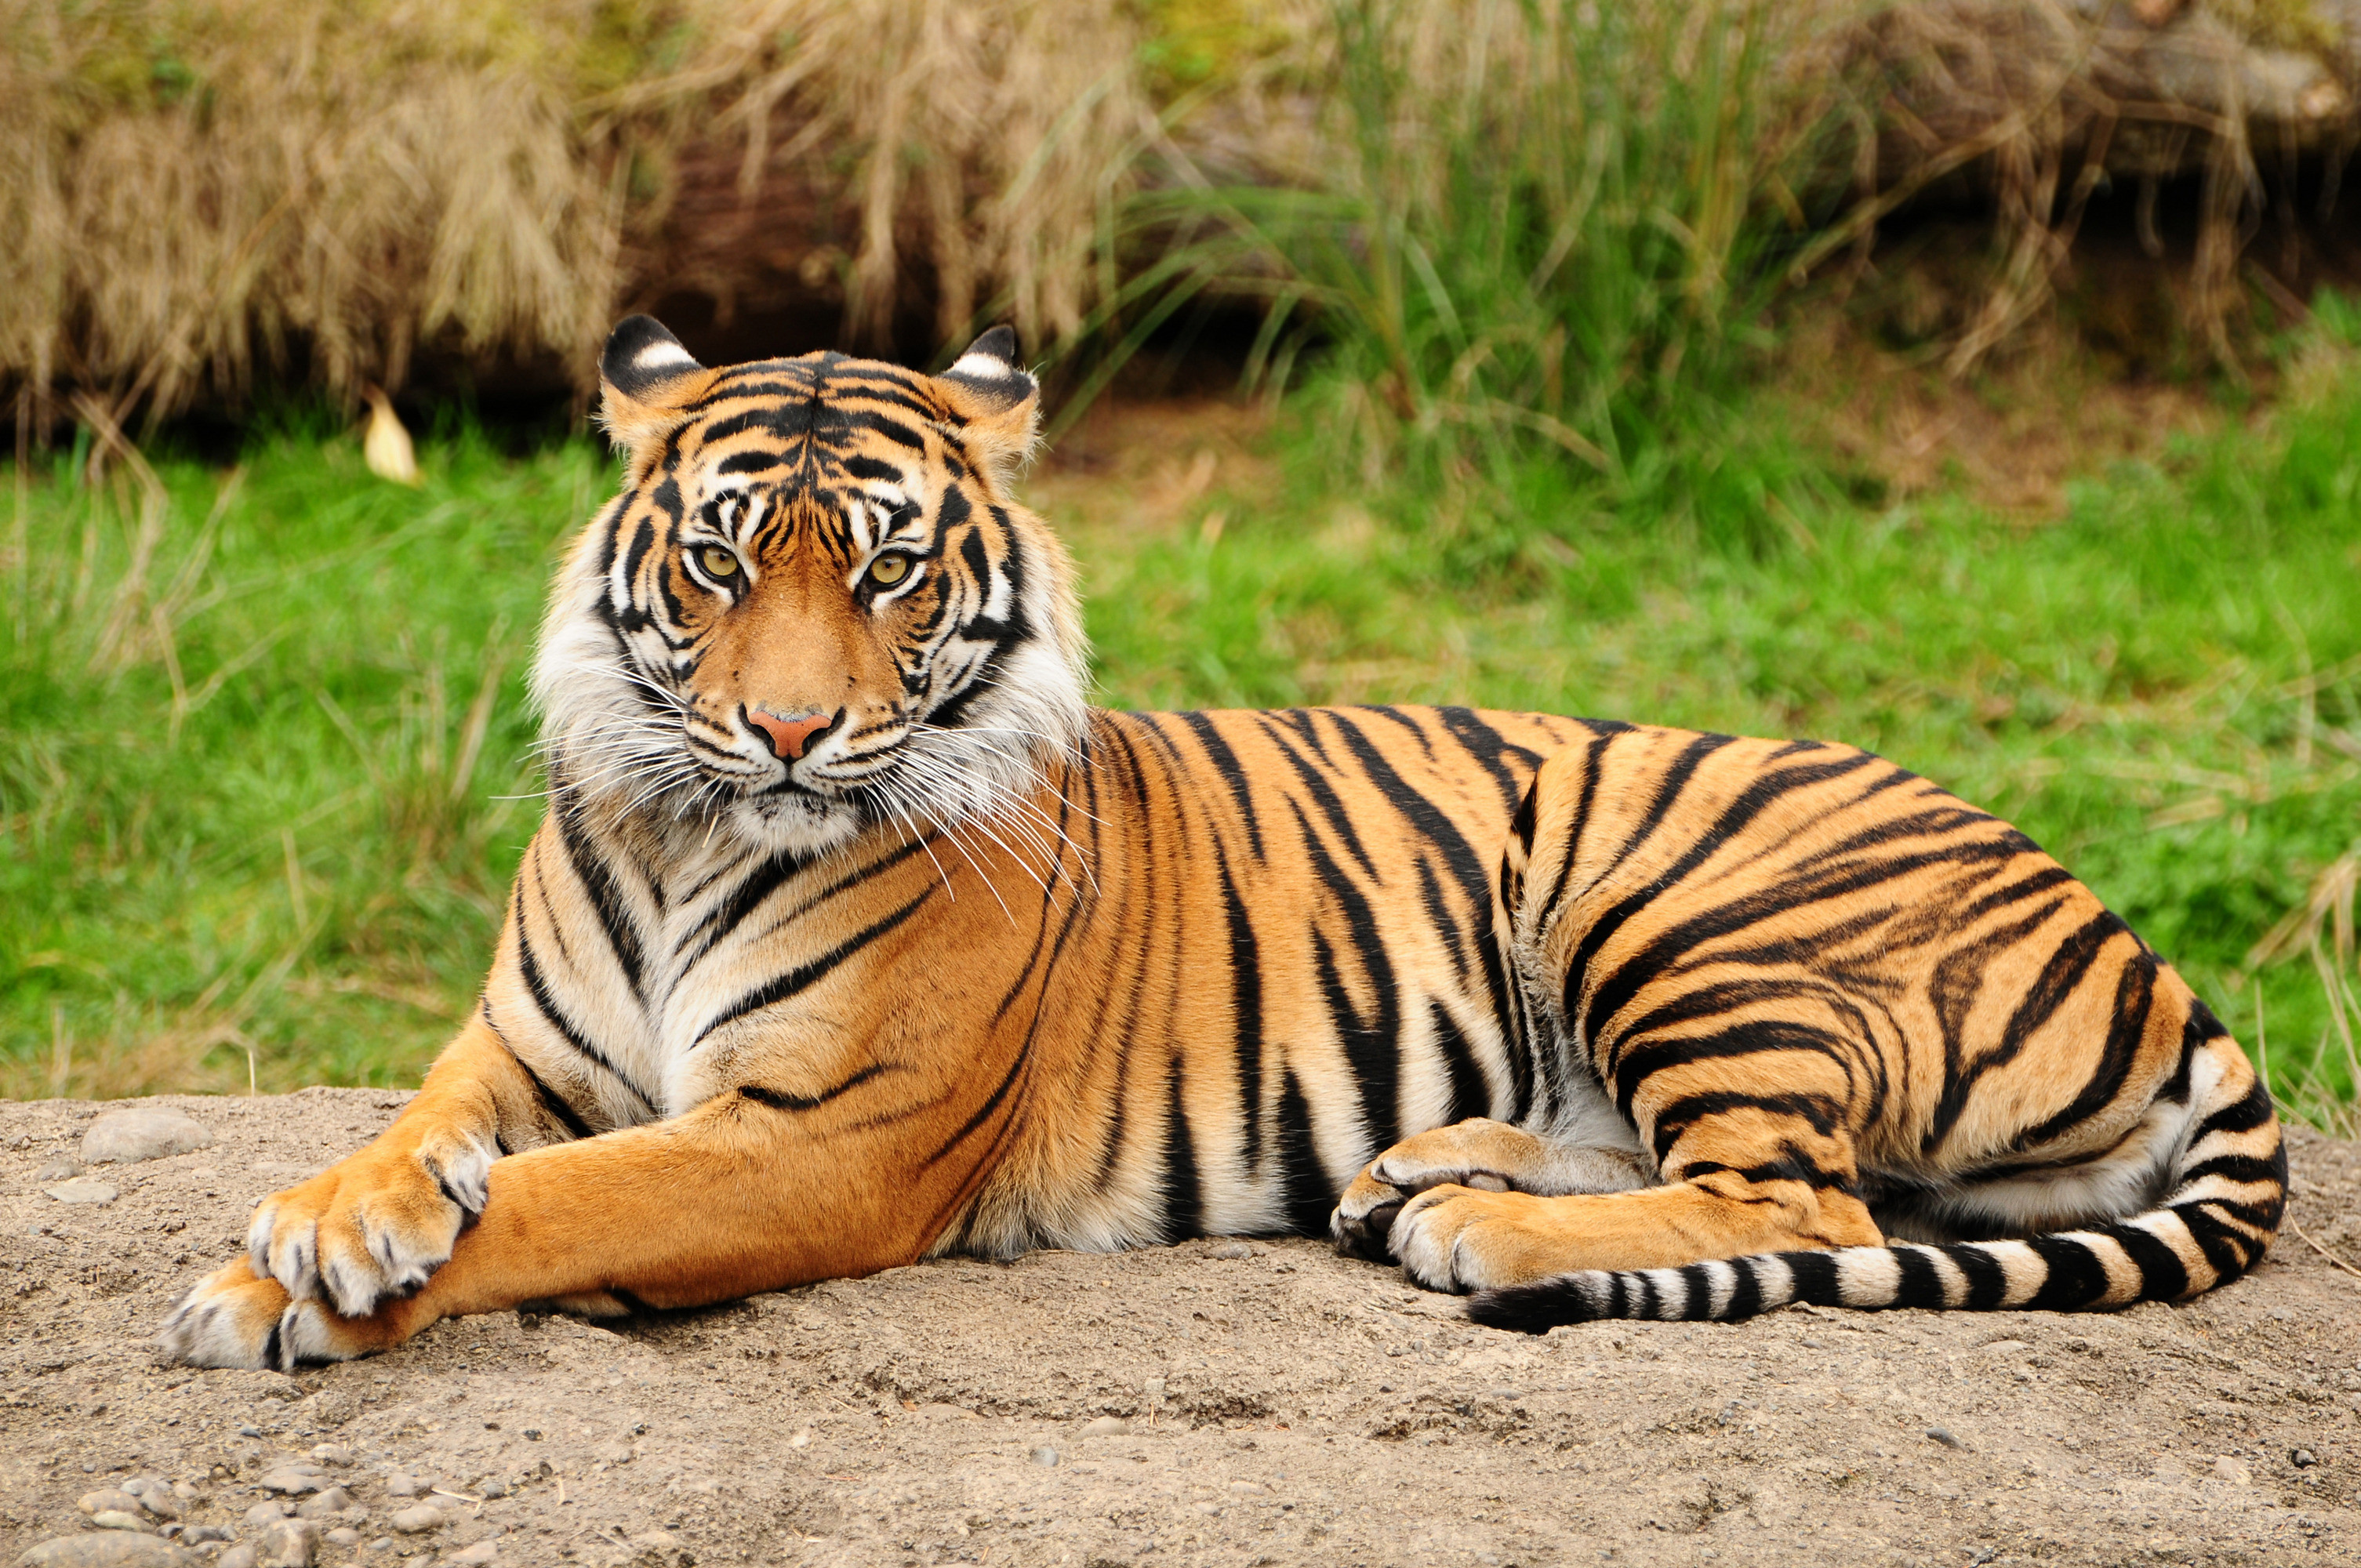 3011x2000 1239 Tiger HD Wallpapers | Backgrounds - Wallpaper Abyss ...